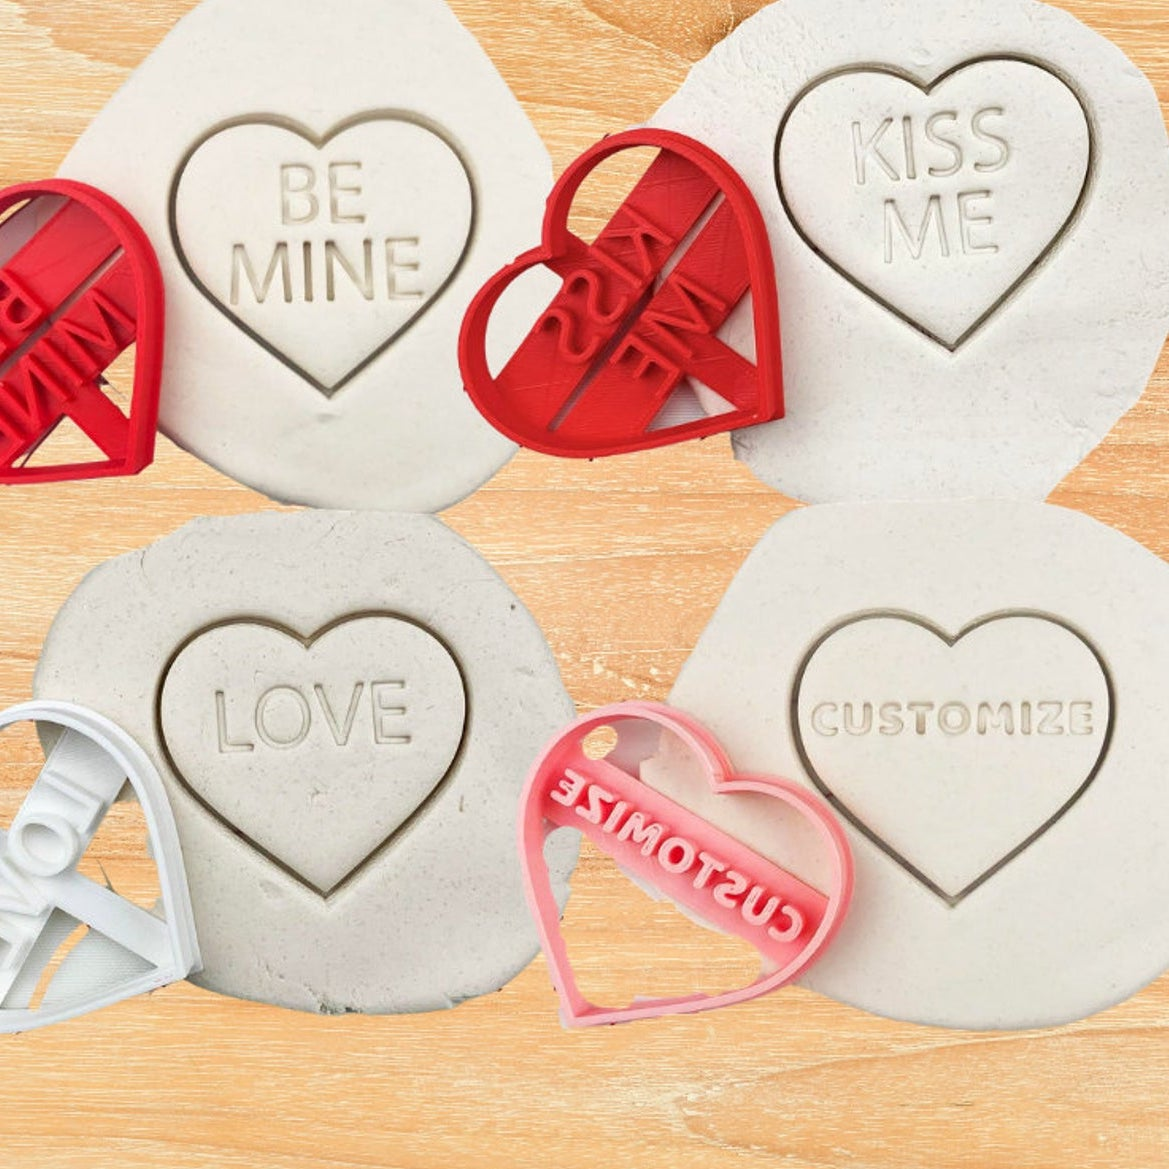 cookie cutters shaped like valentines conversation hearts